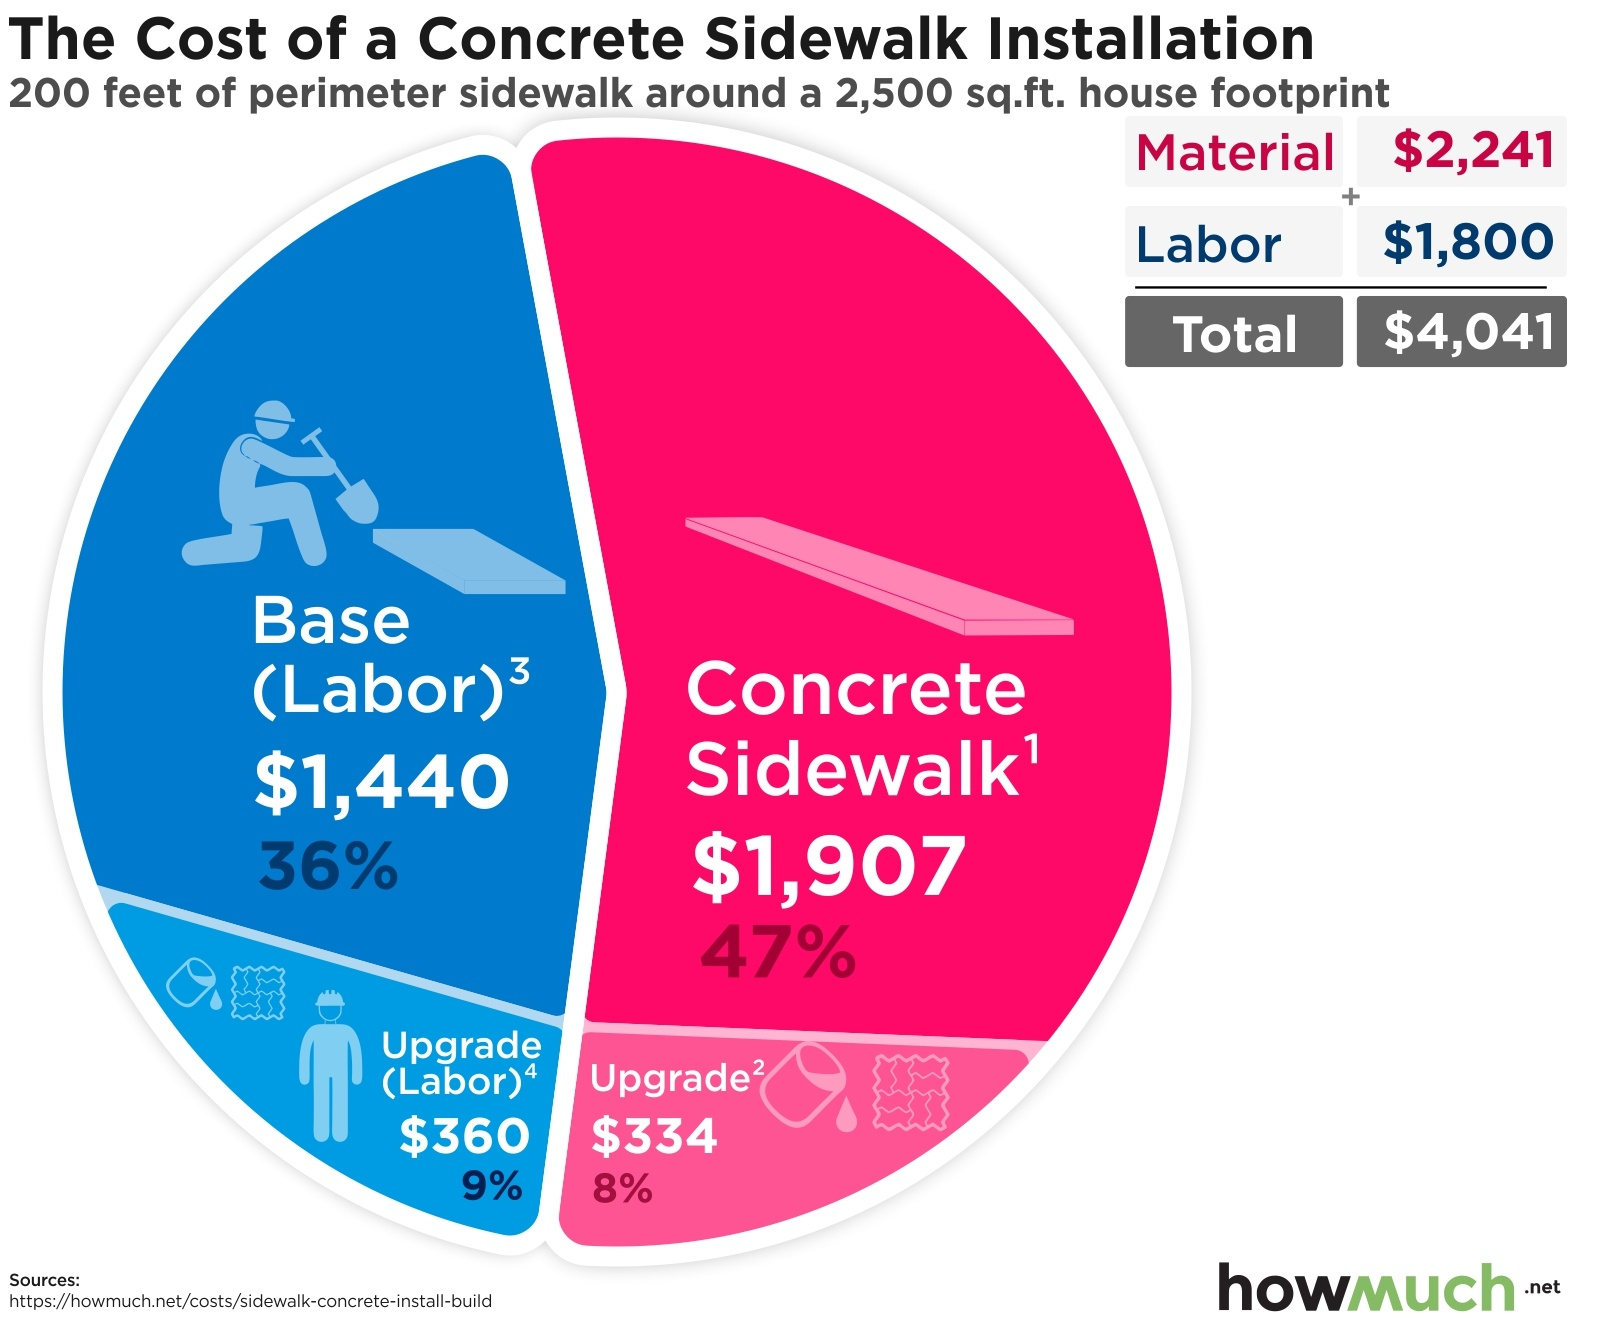 The Cost of a Concrete Sidewalk Installation